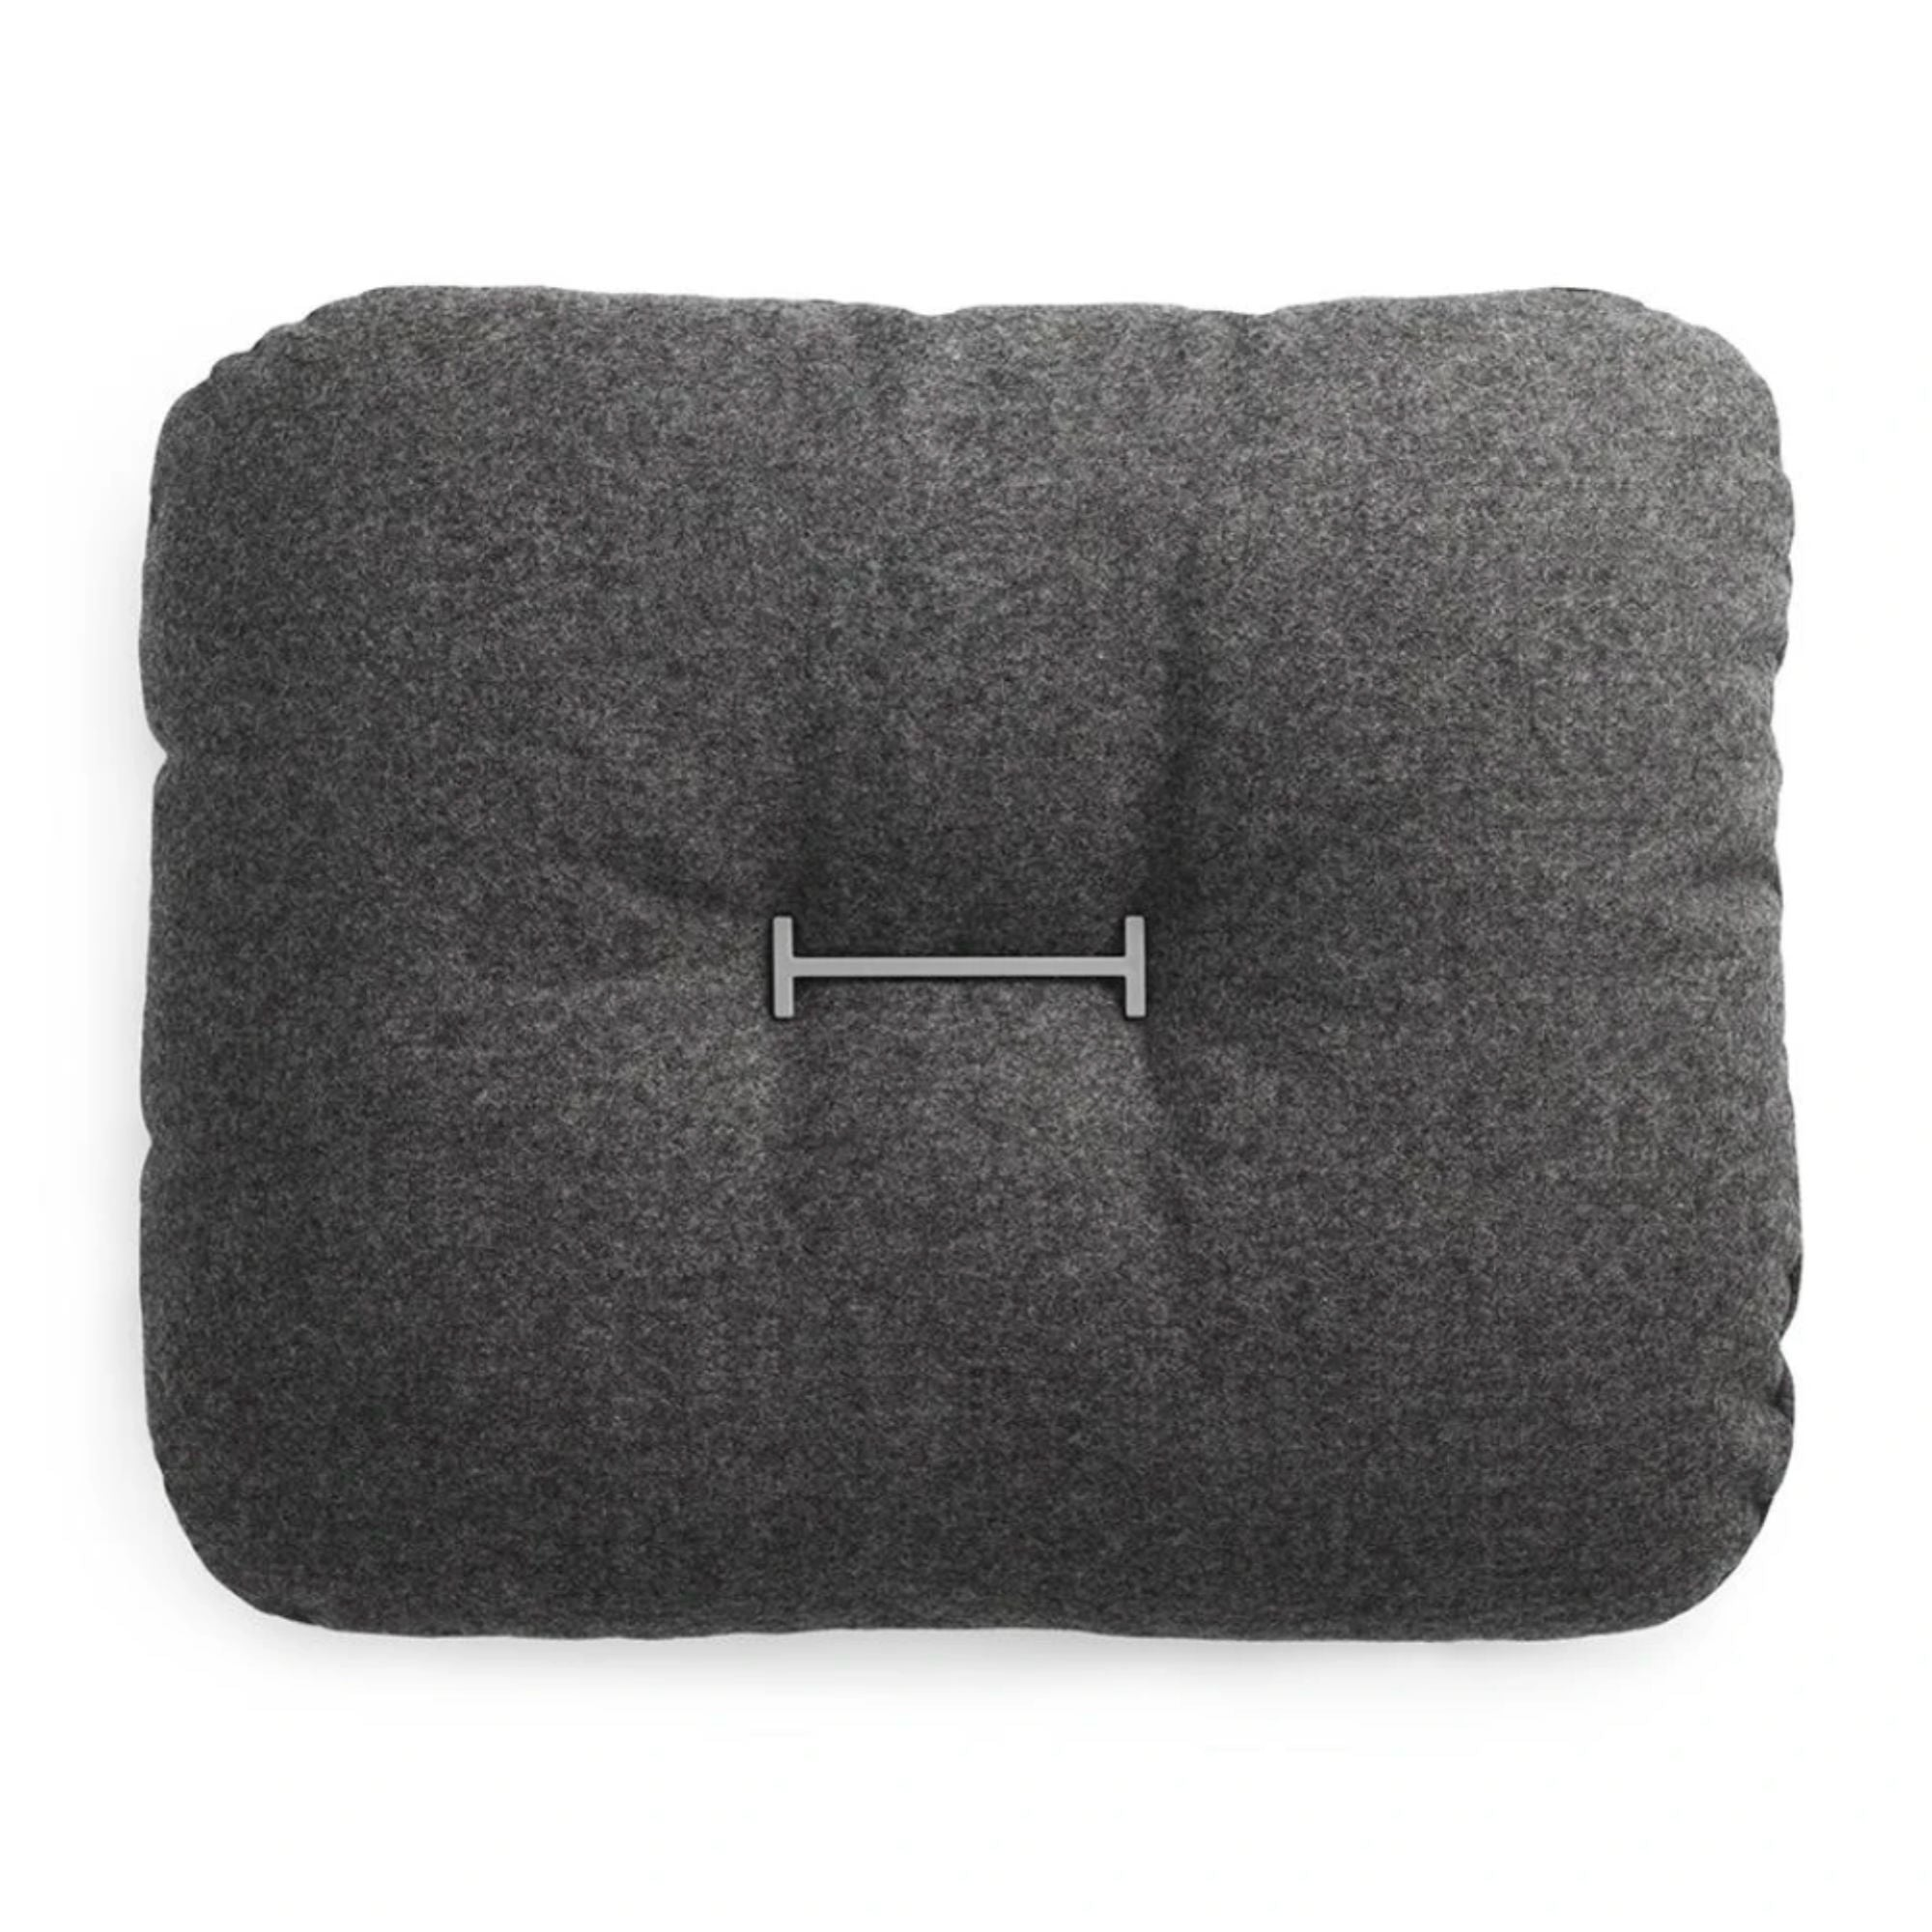 Normann Copenhagen Hi cushion, dark grey